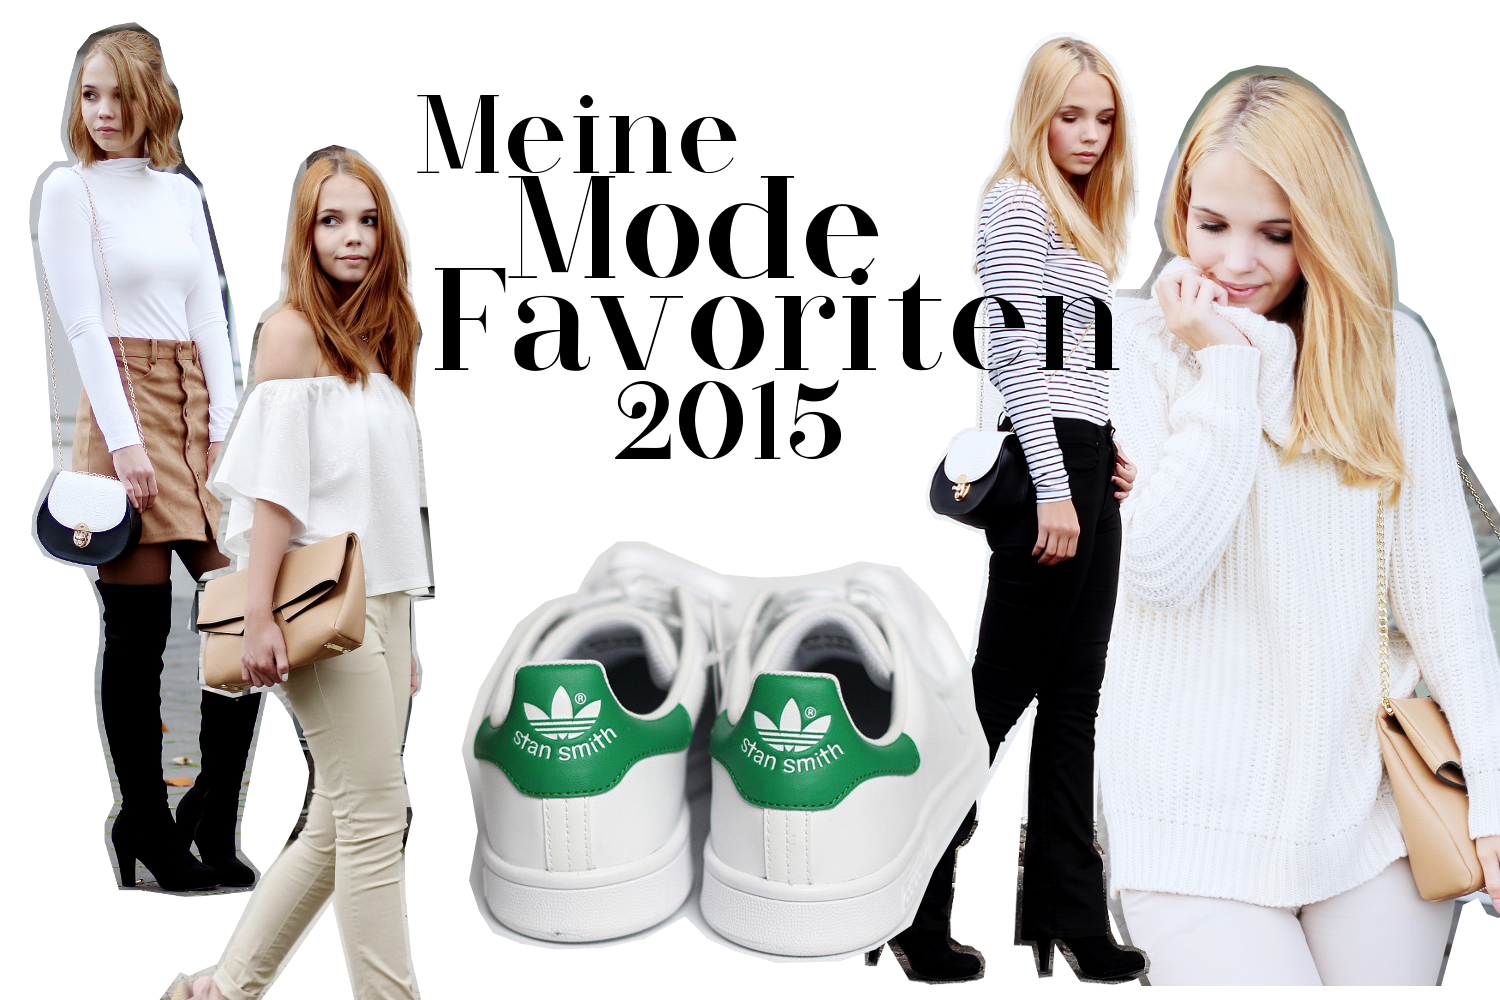 bezaubernde nana, bezauberndenana.de, fashionblog, modeblog, germany, deutschland, mode favoriten 2015, trends 2015, fashion, mode,